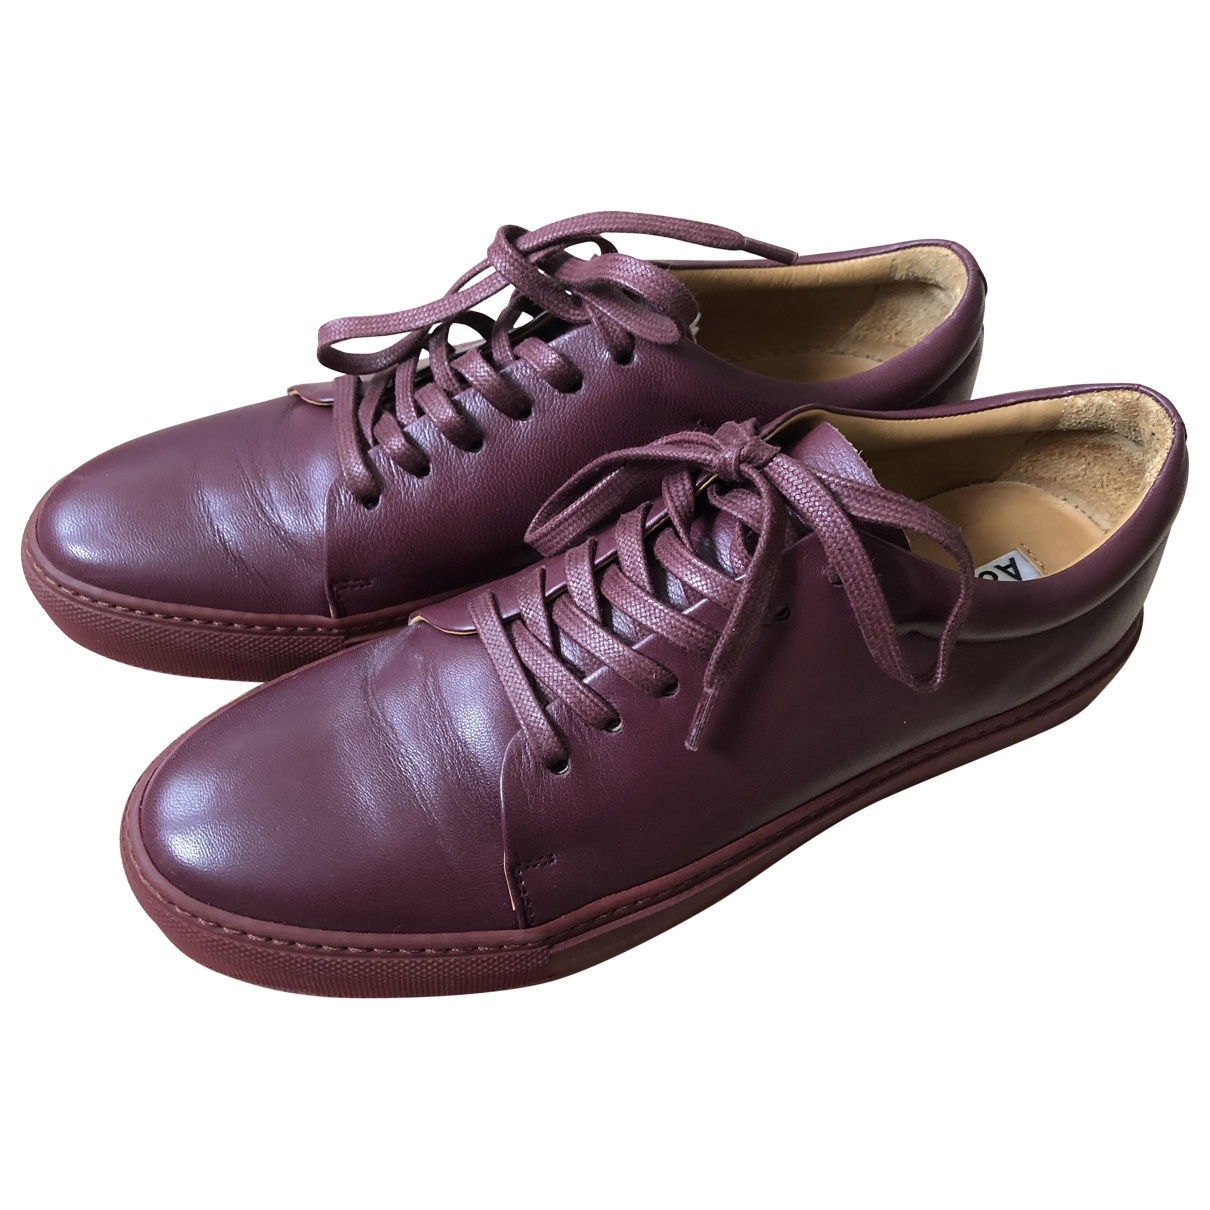 Acne Studios \N Burgundy Leather Trainers for Women 40 EU